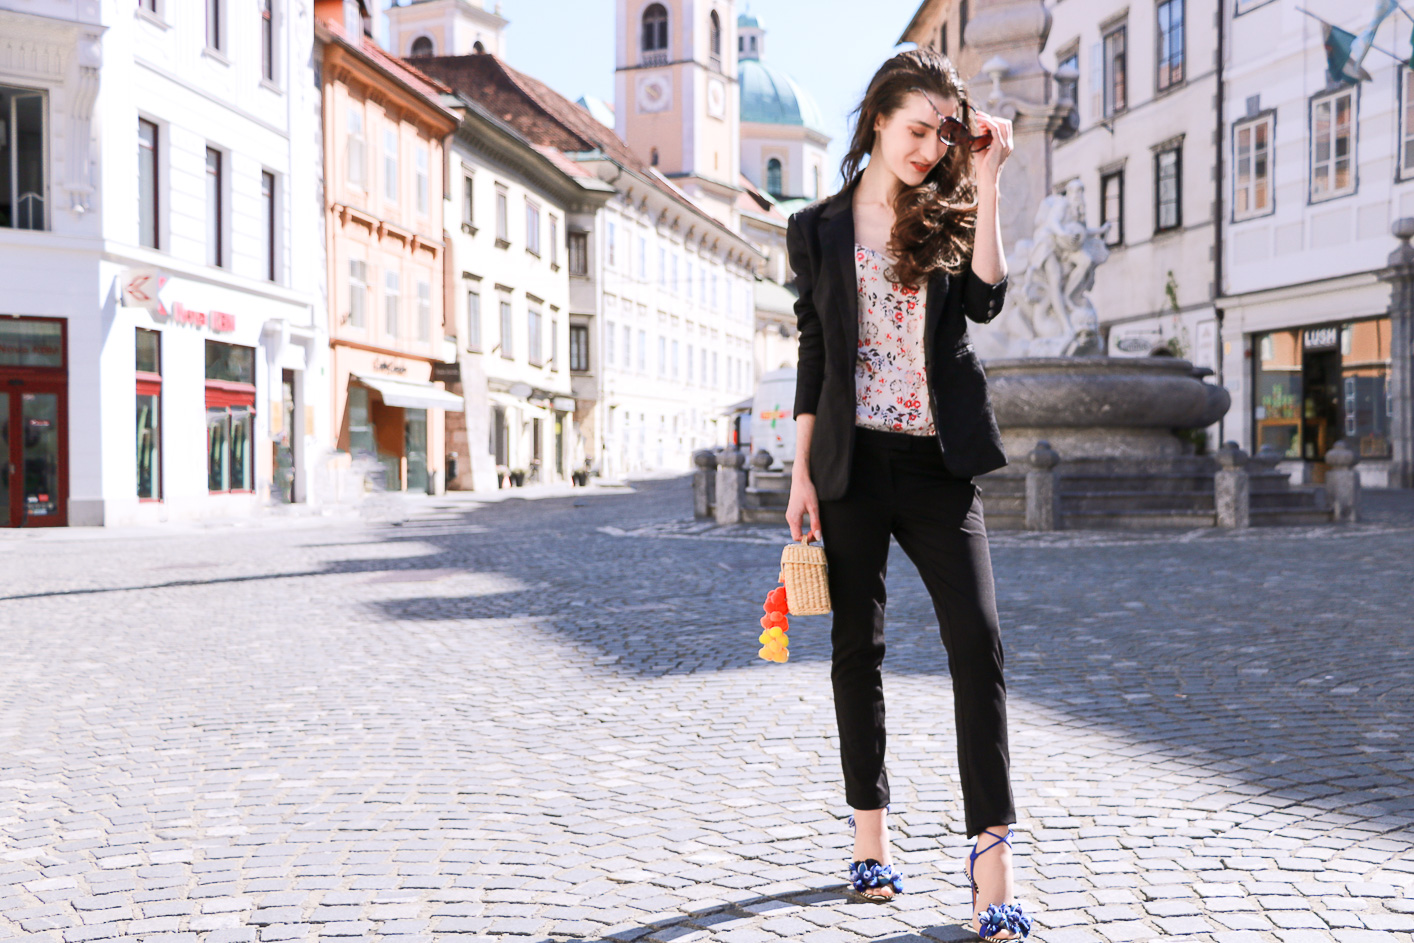 Fashion blogger Veronika Lipar of Brunette From Wall Street sharing how to style feminine black pant suit and sandals for party this summer